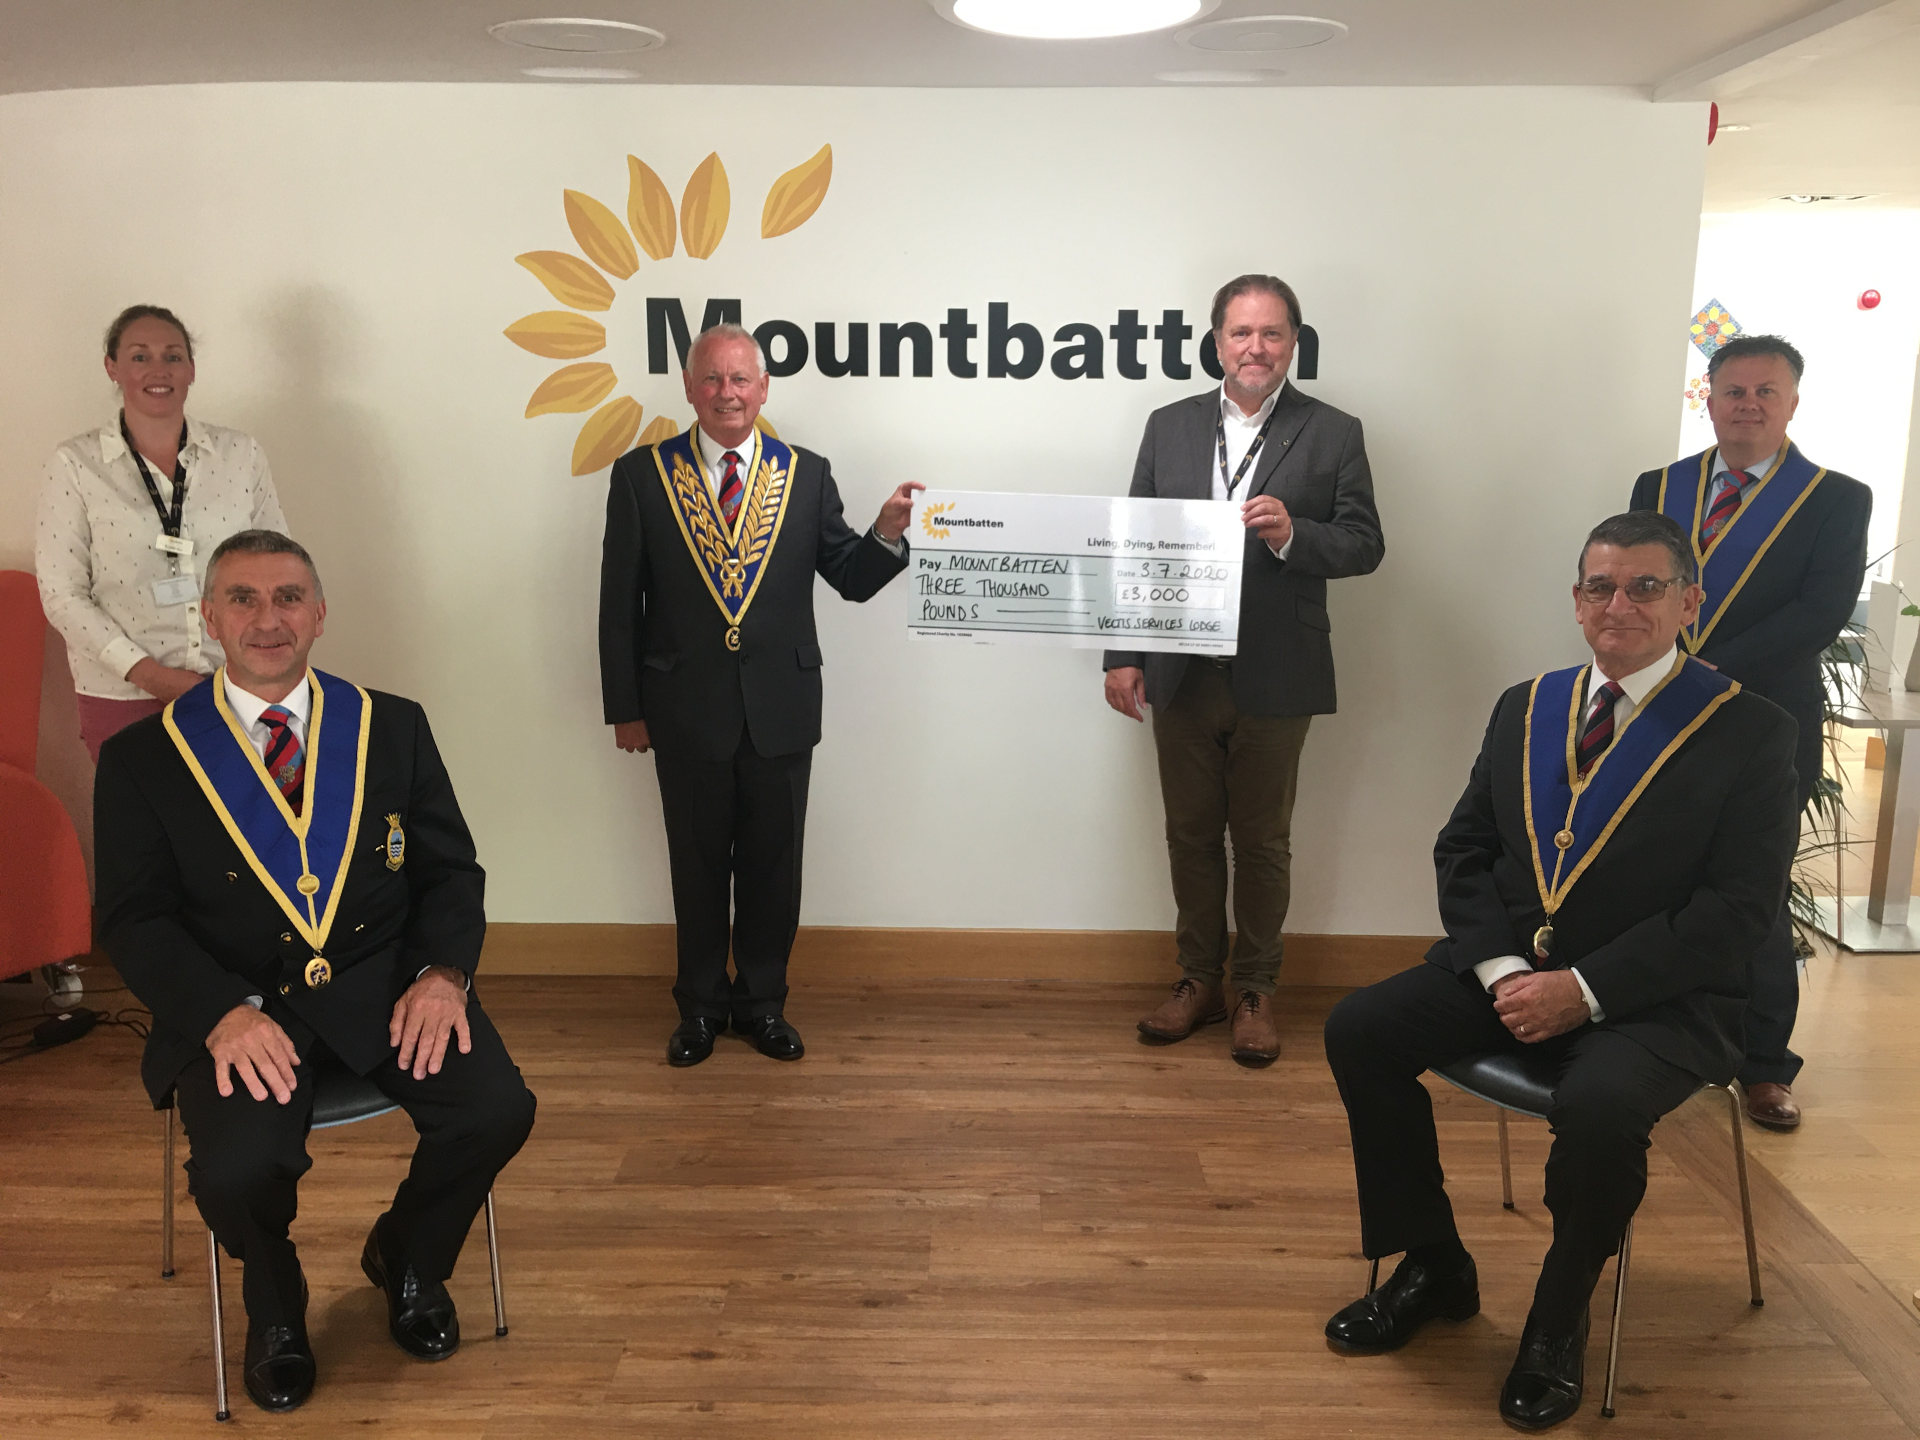 Isle of Wight - Cash boost for Mountbatten thanks to Freemasons